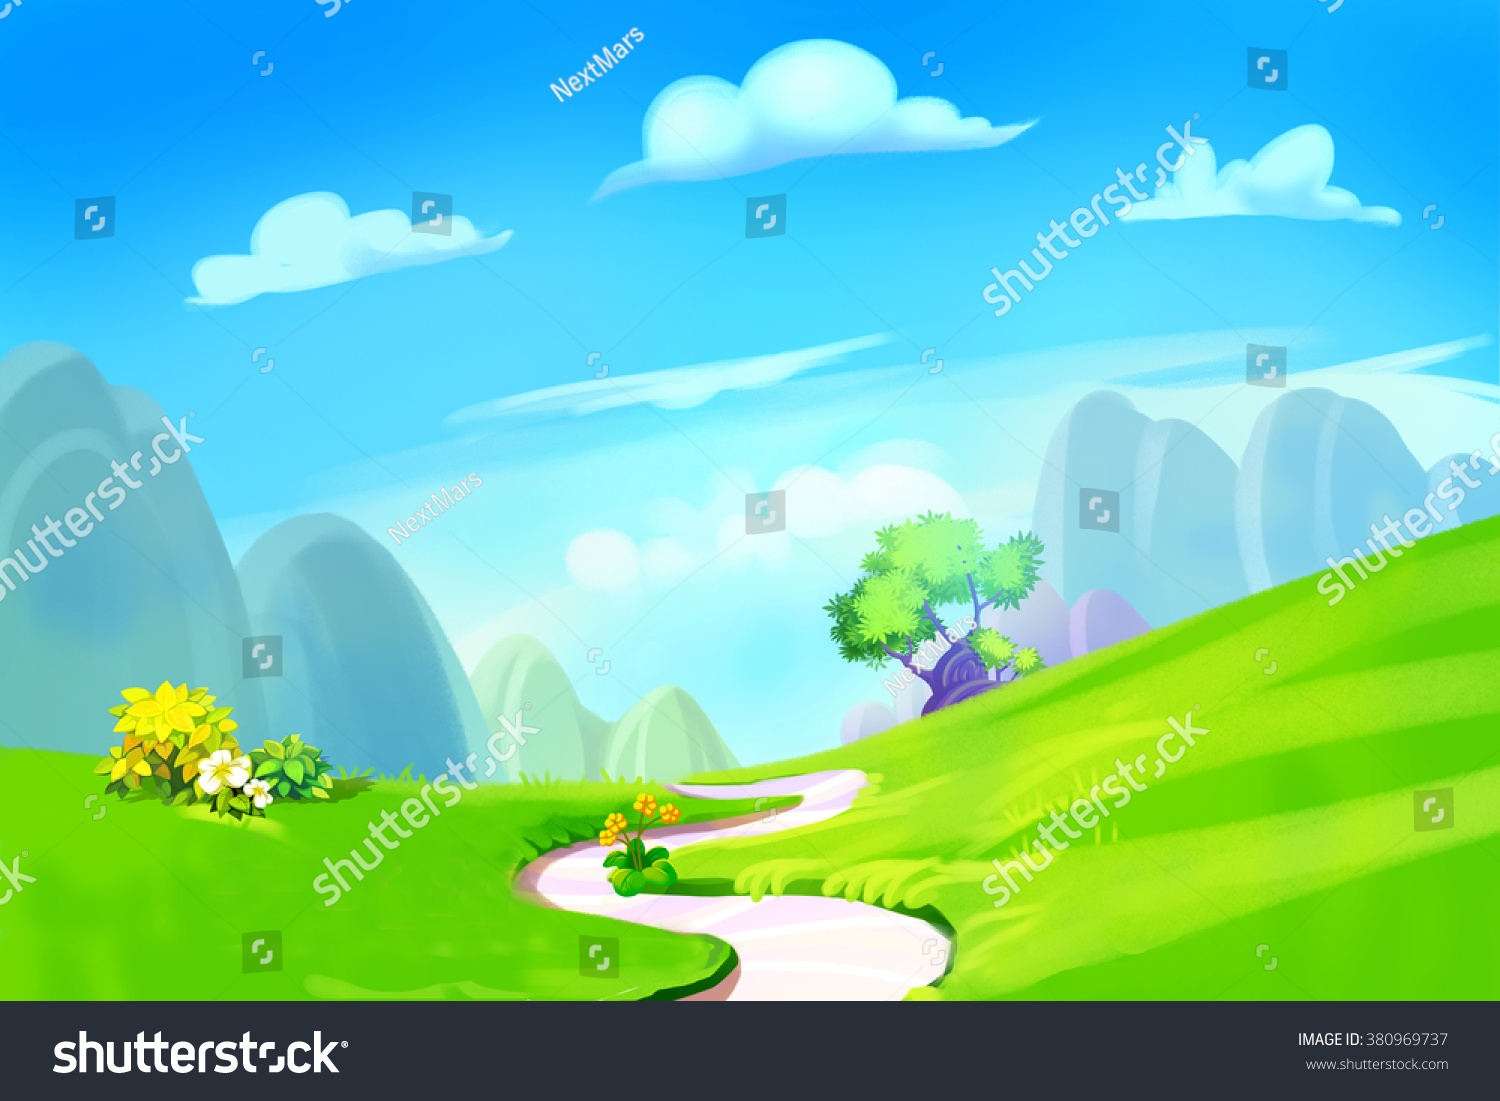 Fantastic Wallpaper Mountain Cartoon - stock-photo-creative-illustration-and-innovative-art-clean-green-hill-with-road-to-the-mountain-realistic-380969737  Image_948745.jpg